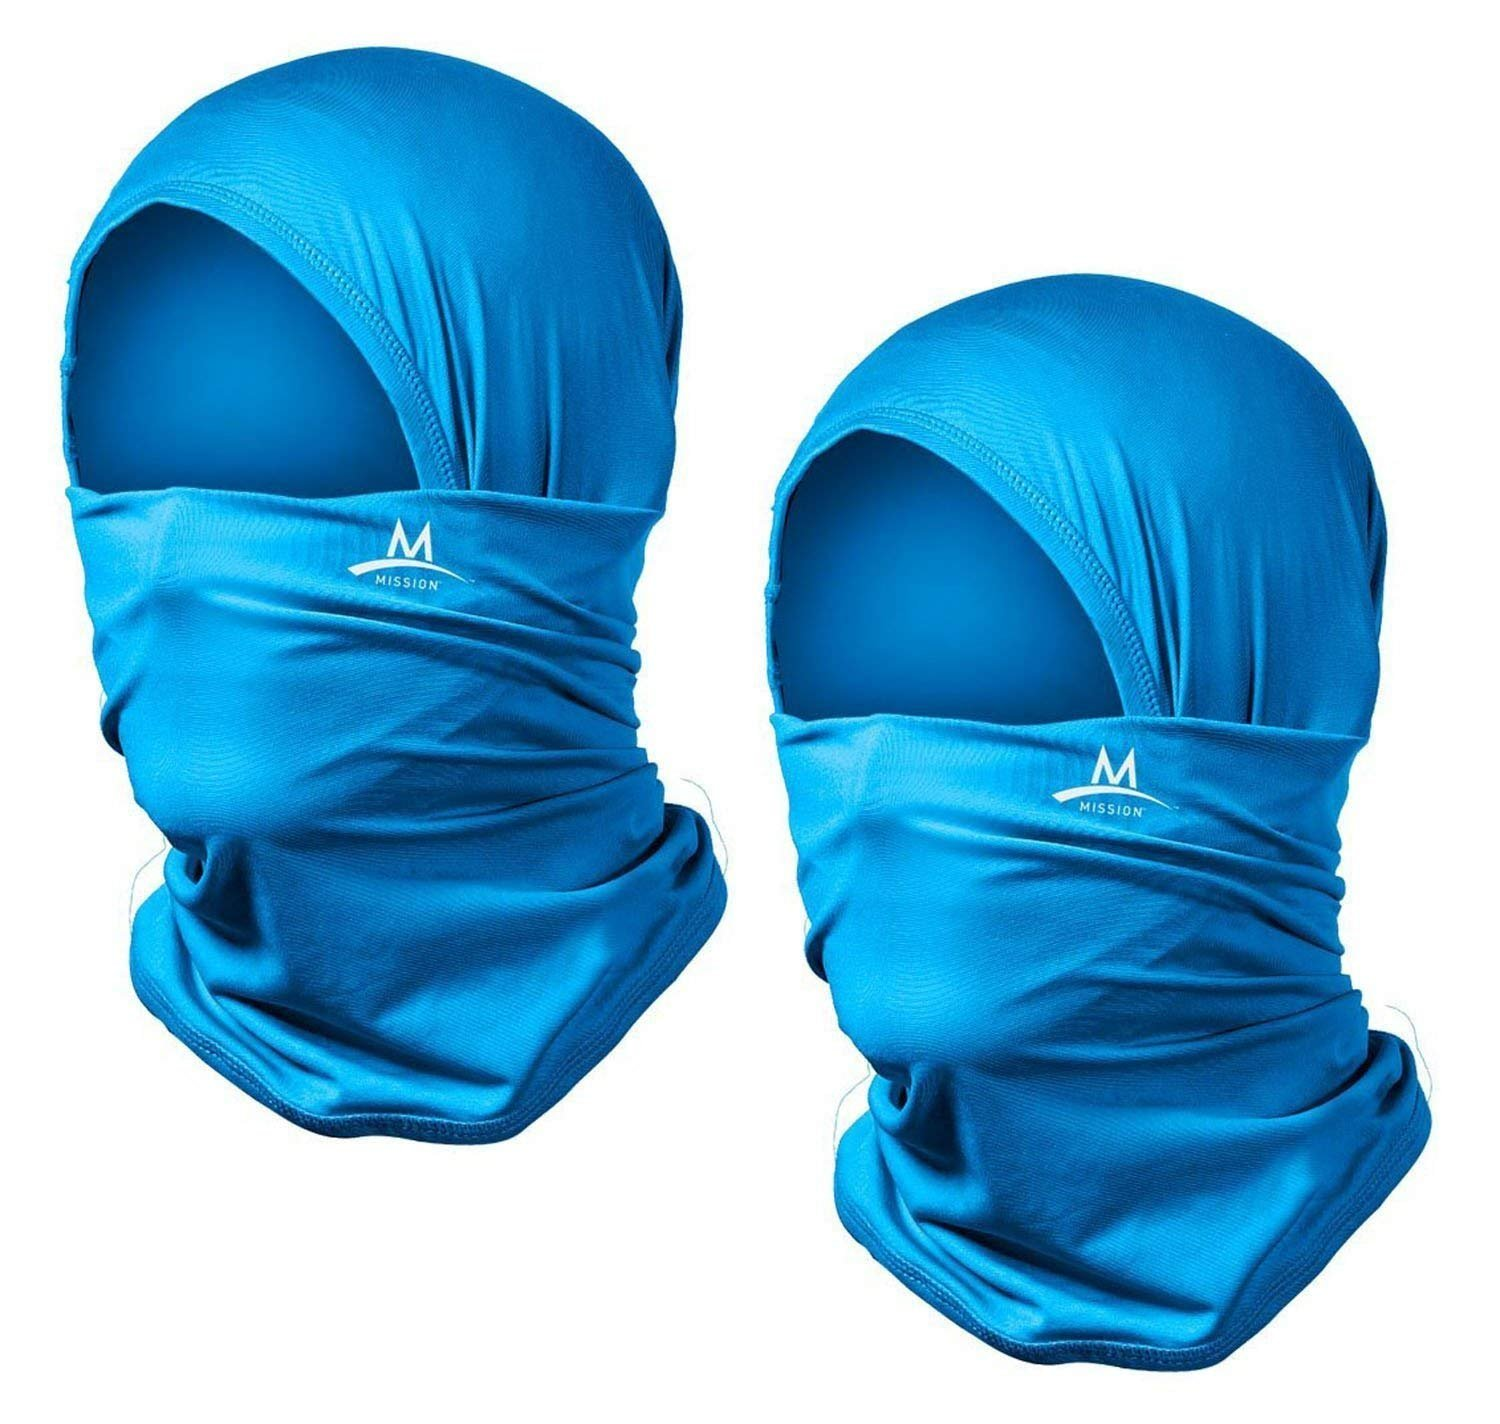 Mission Multi-Cool 12 in 1 Multifunctional Gaiter and Headwear (Blue: 2 Pack)